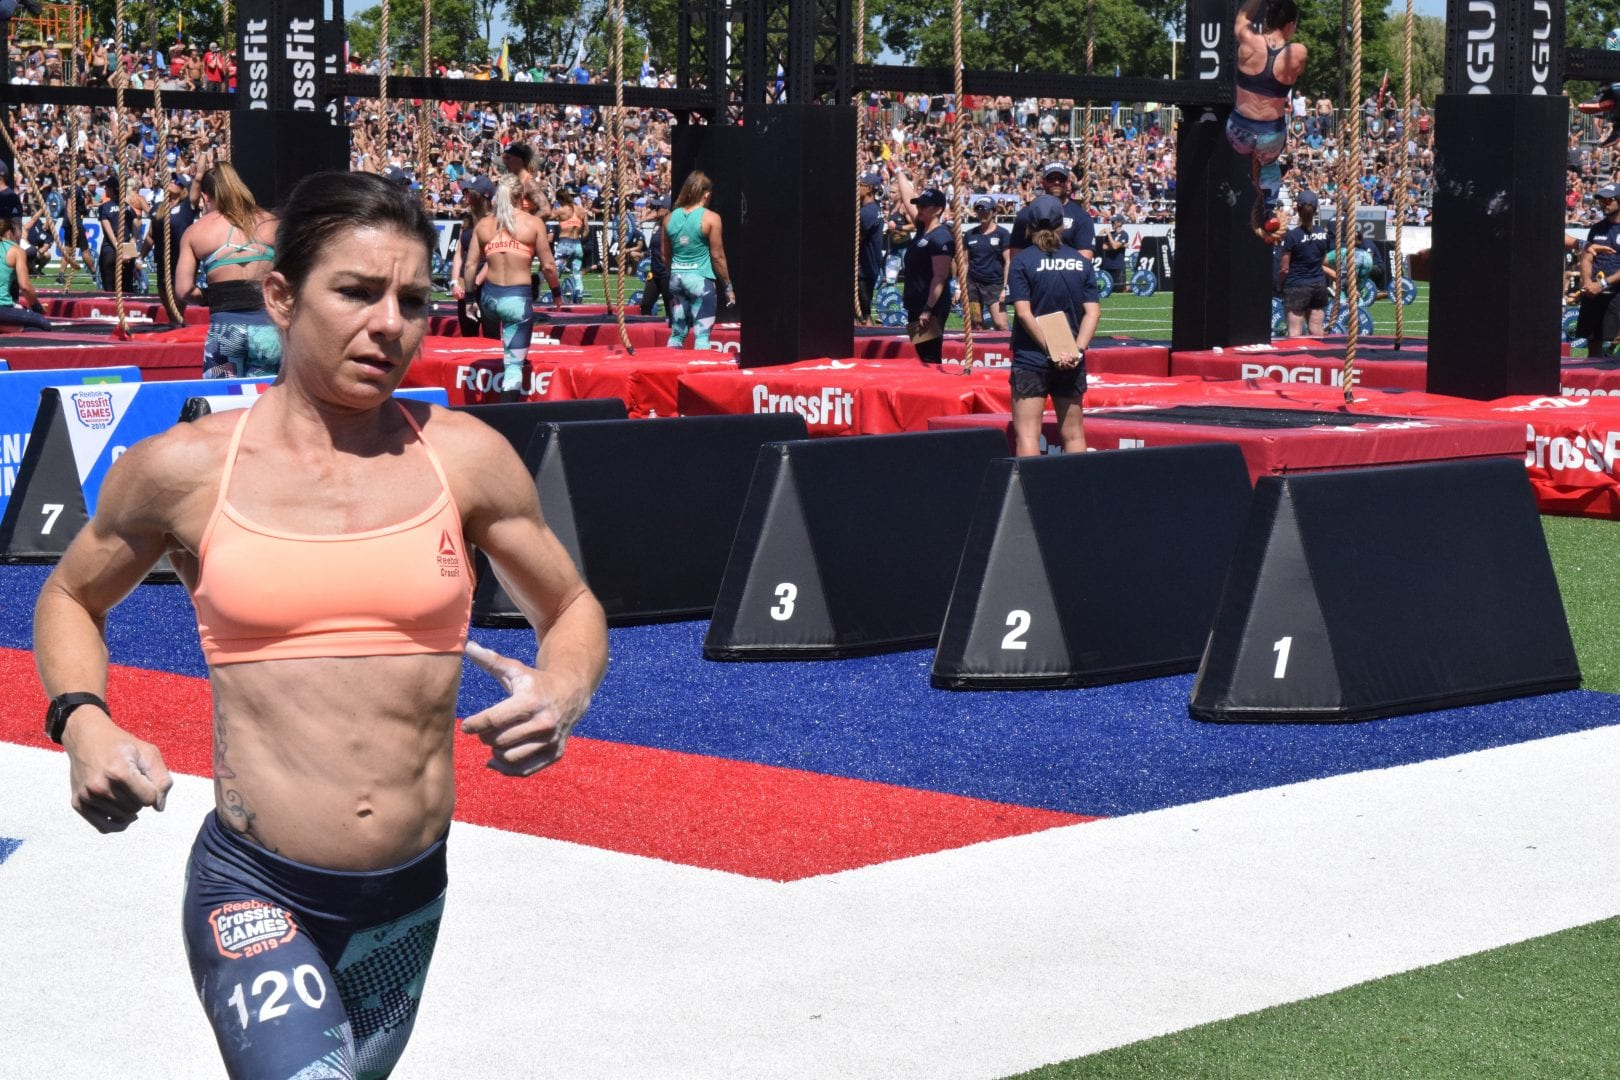 Cheryl Nasso completes a lap between rounds of legless rope climbs at the 2019 CrossFit Games